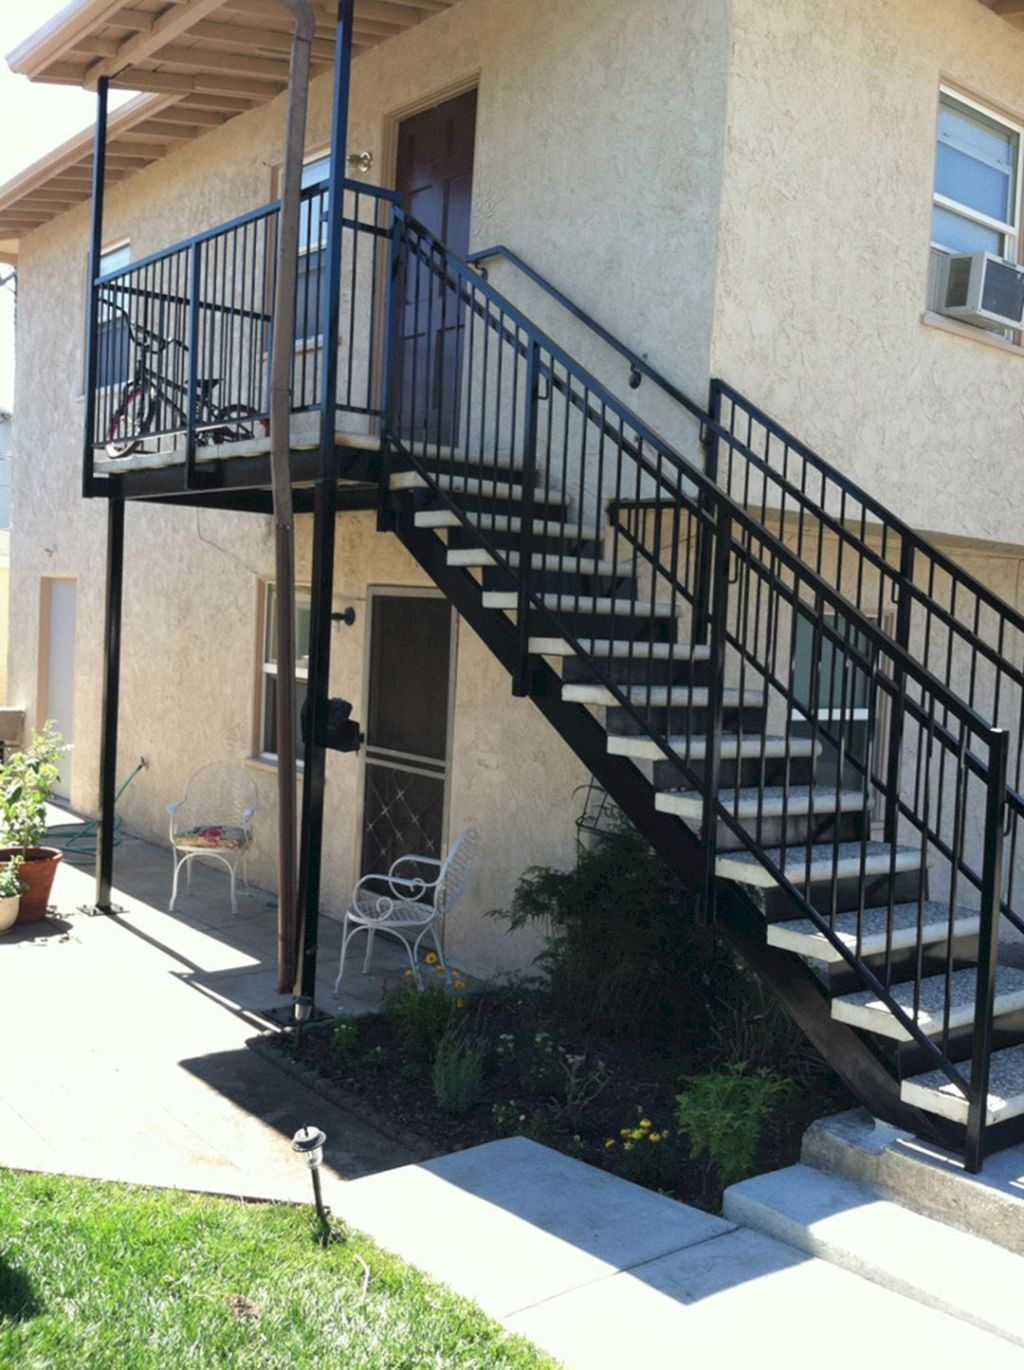 25 Marvelous Outdoor Stairway Ideas For Creative Home Design Decoredo Outdoor Stairs Outside Stairs Design Stairways